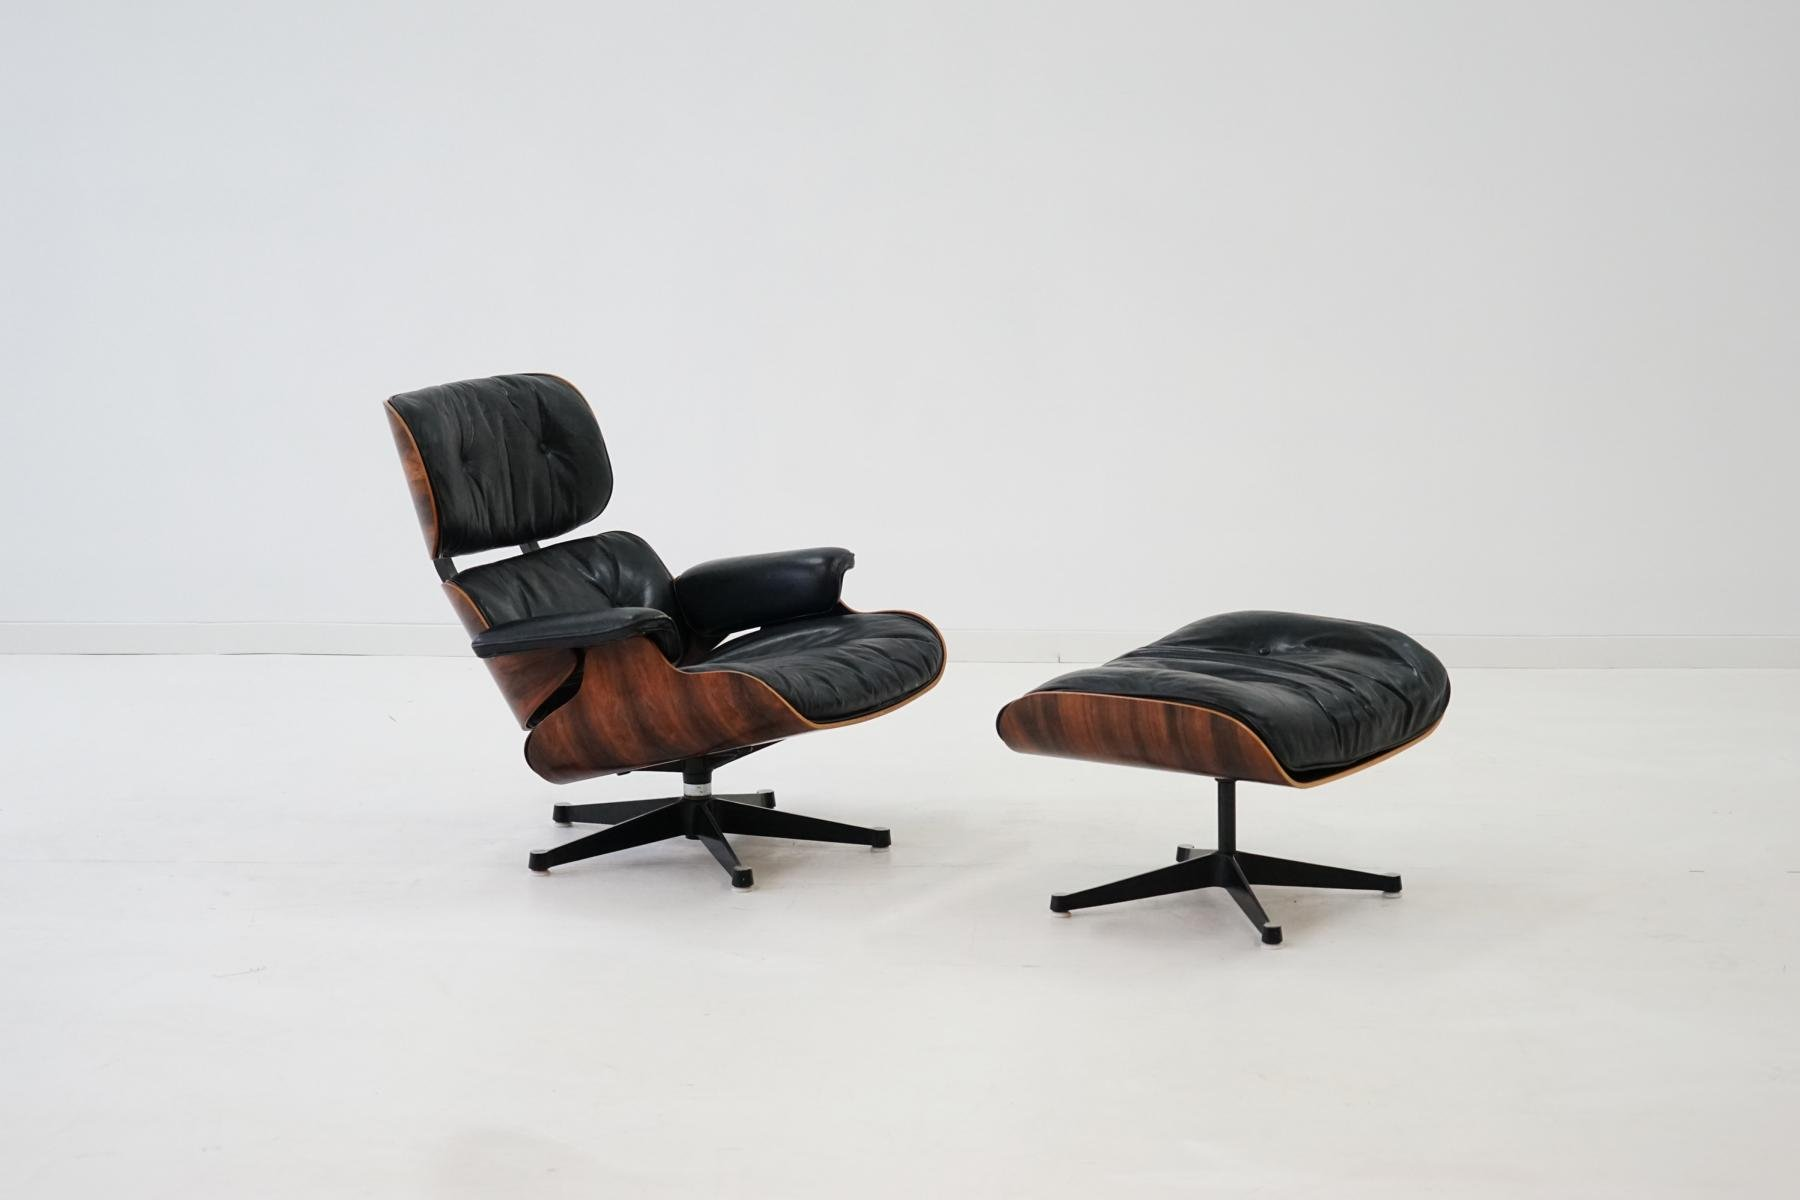 sessel und ottomane von charles und ray eames f r herman miller 1960er bei pamono kaufen. Black Bedroom Furniture Sets. Home Design Ideas